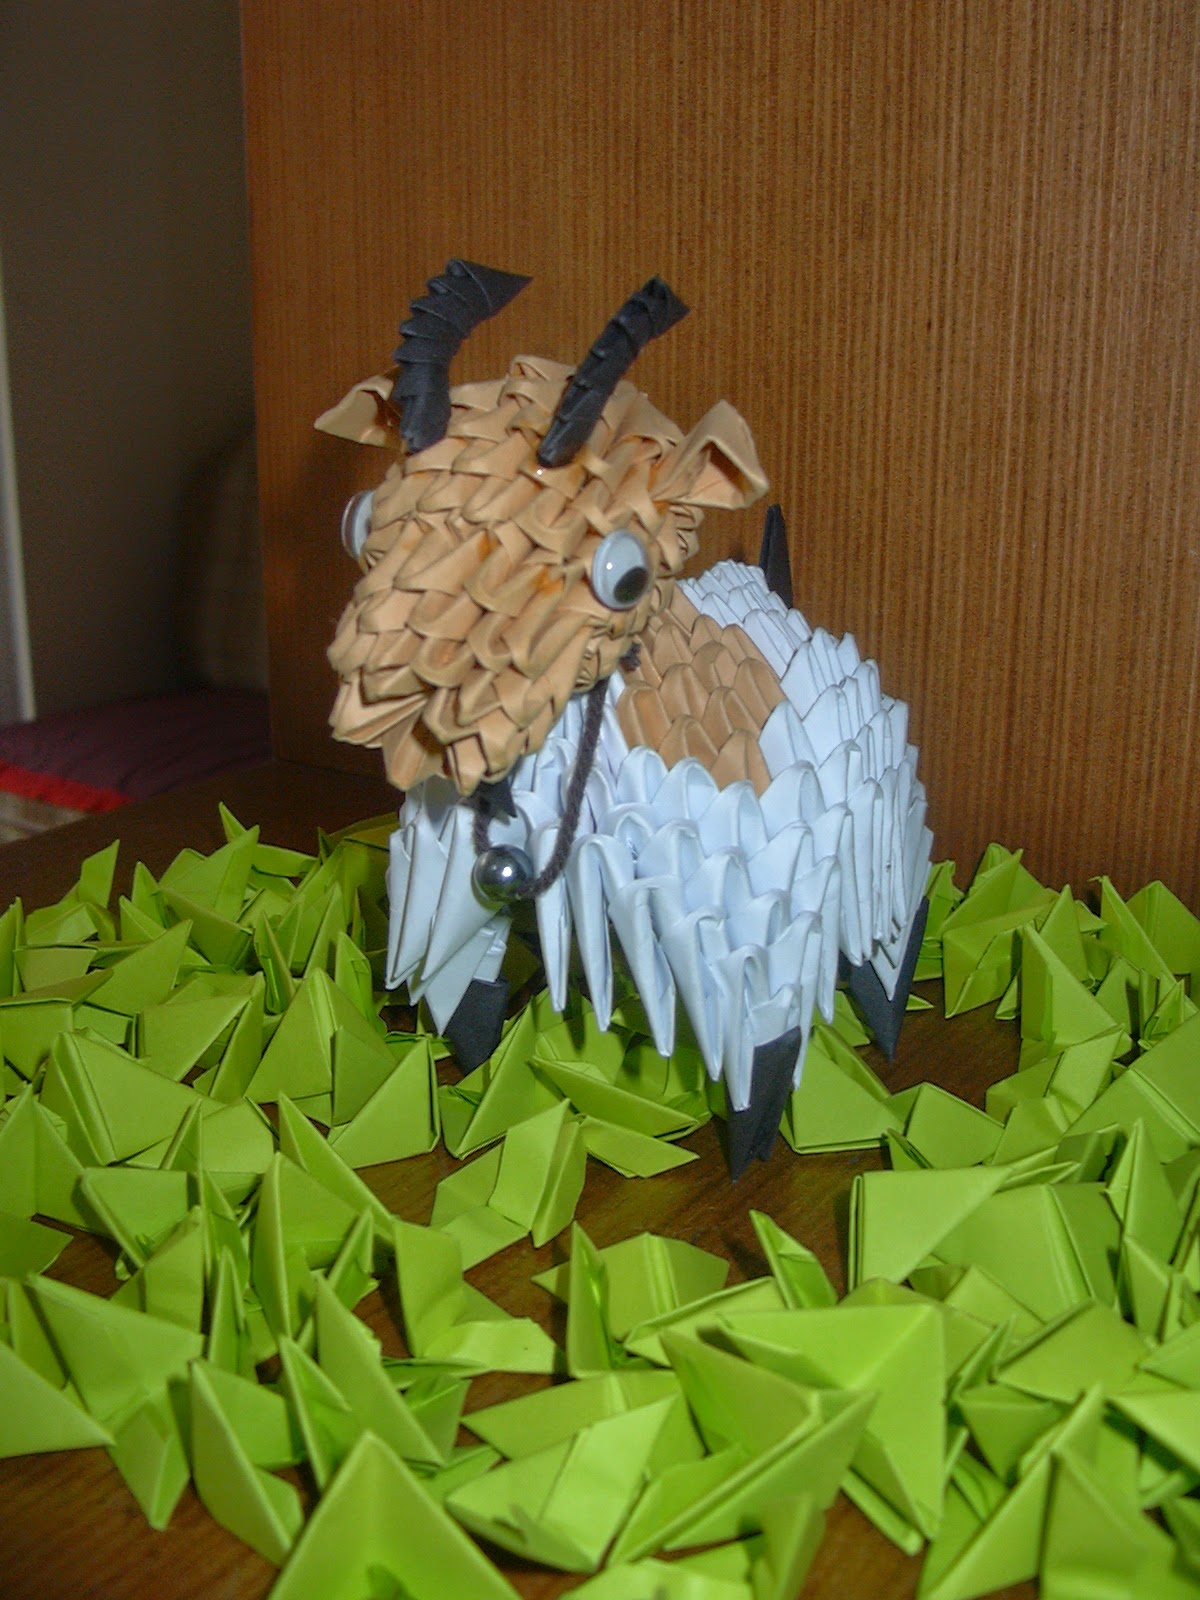 ICHANOKO 3D ORIGAMI INDONESIA: Model 3d origami - ANIMALS - photo#7